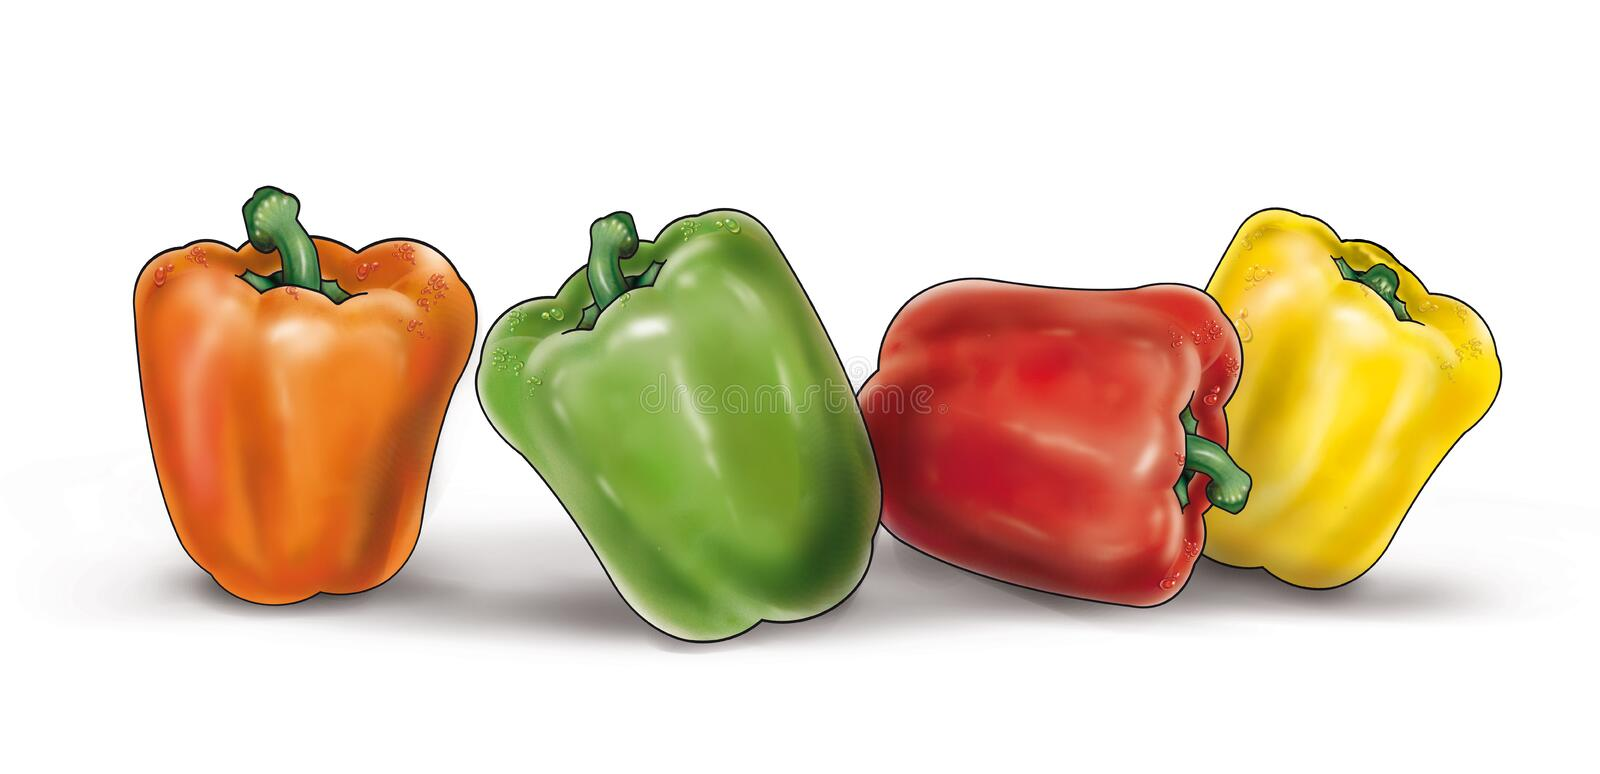 Colorful peppers on white illustration. Fresh red, yellow,green, and orange Belgium peppers with water droplets on them. Beautiful Belgium peppers illustration vector illustration